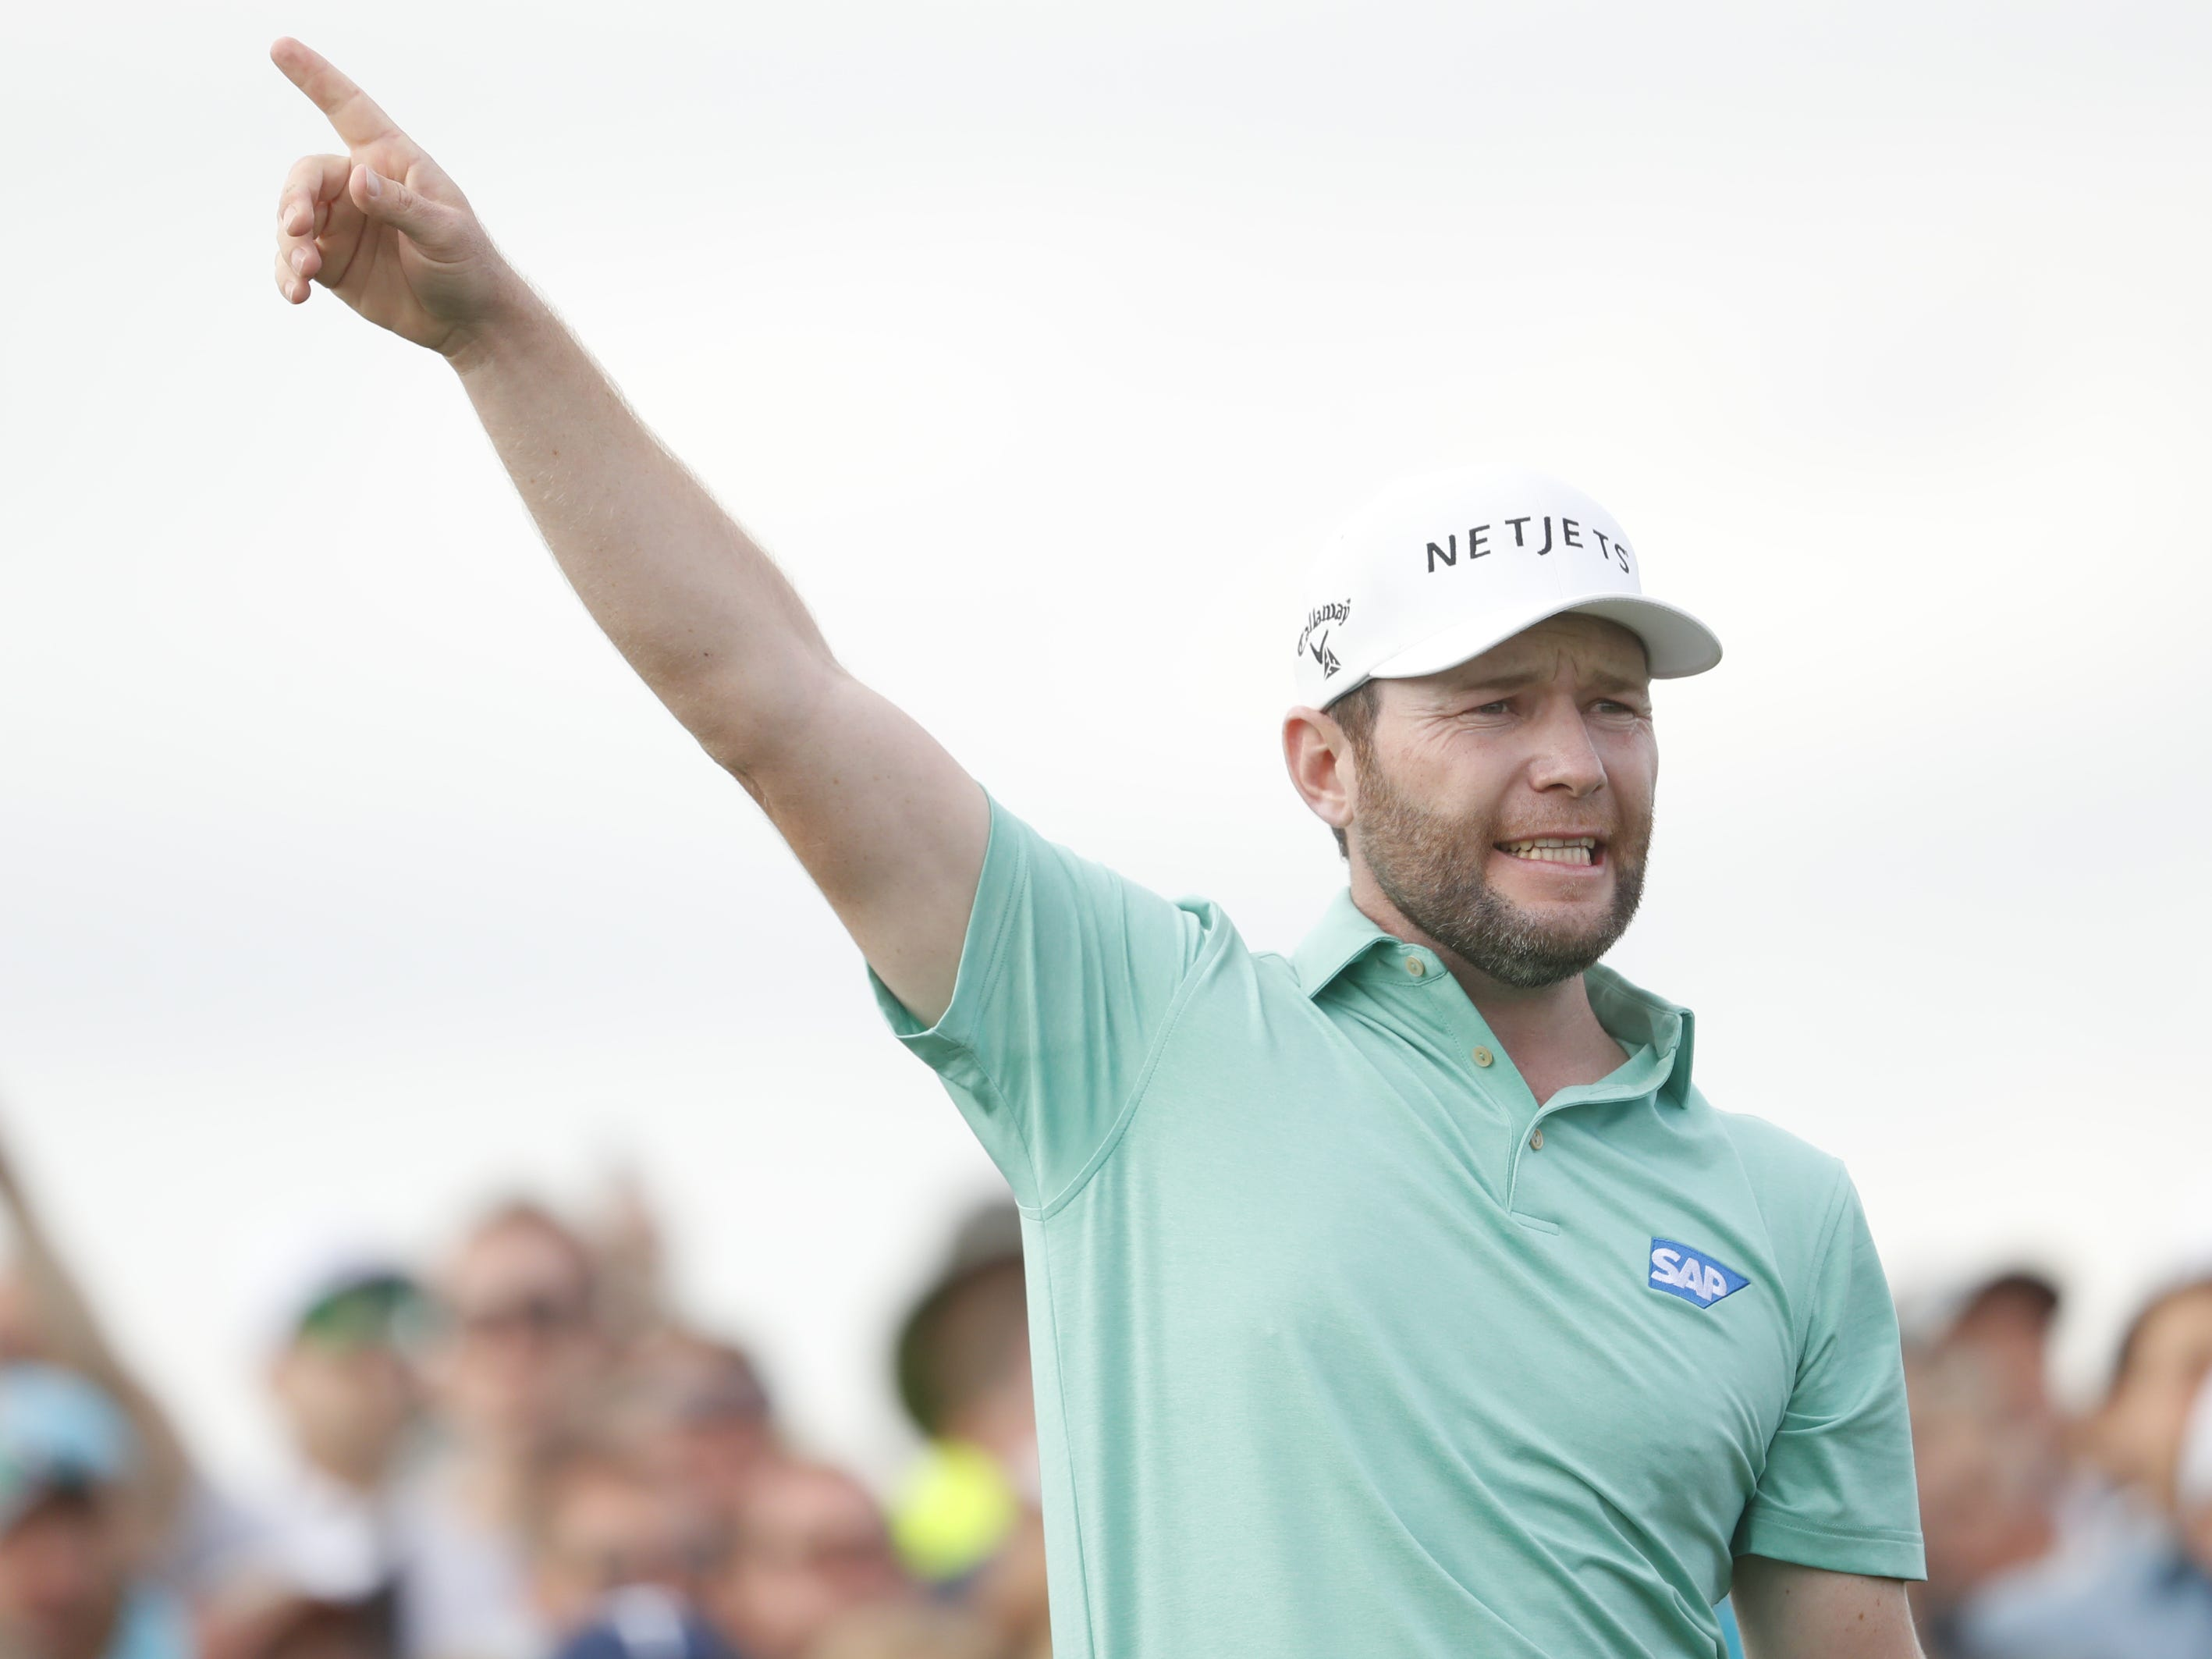 Branden Grace points to his right after a tee shot on the 15th hole during the third round of the Waste Management Phoenix Open at TPC Scottsdale in Scottsdale, Ariz. on February 2, 2019.